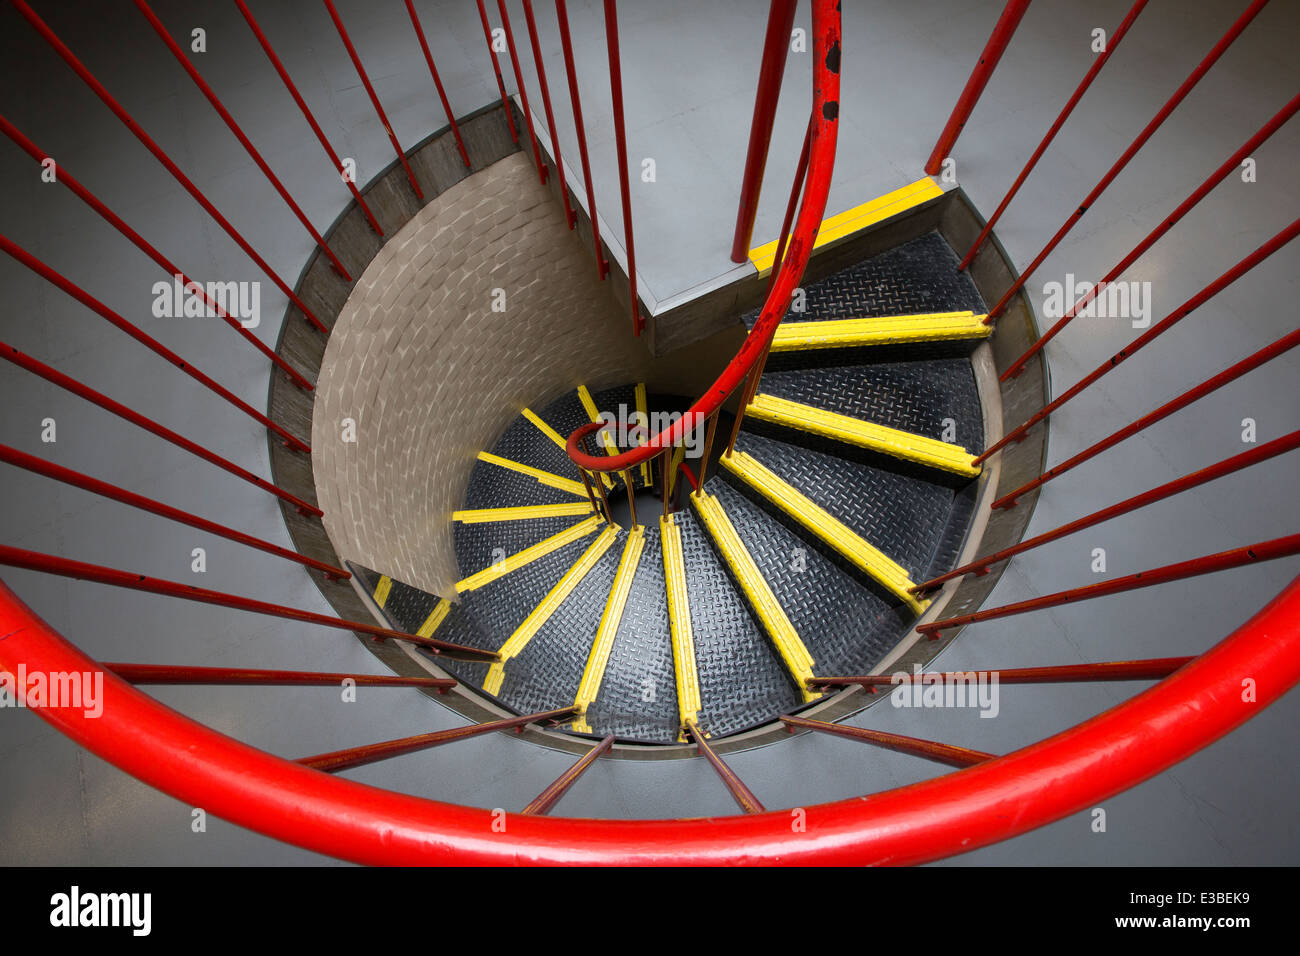 A spiral staircase at the Munrow Sports Centre at Birmingham University, UK - Stock Image